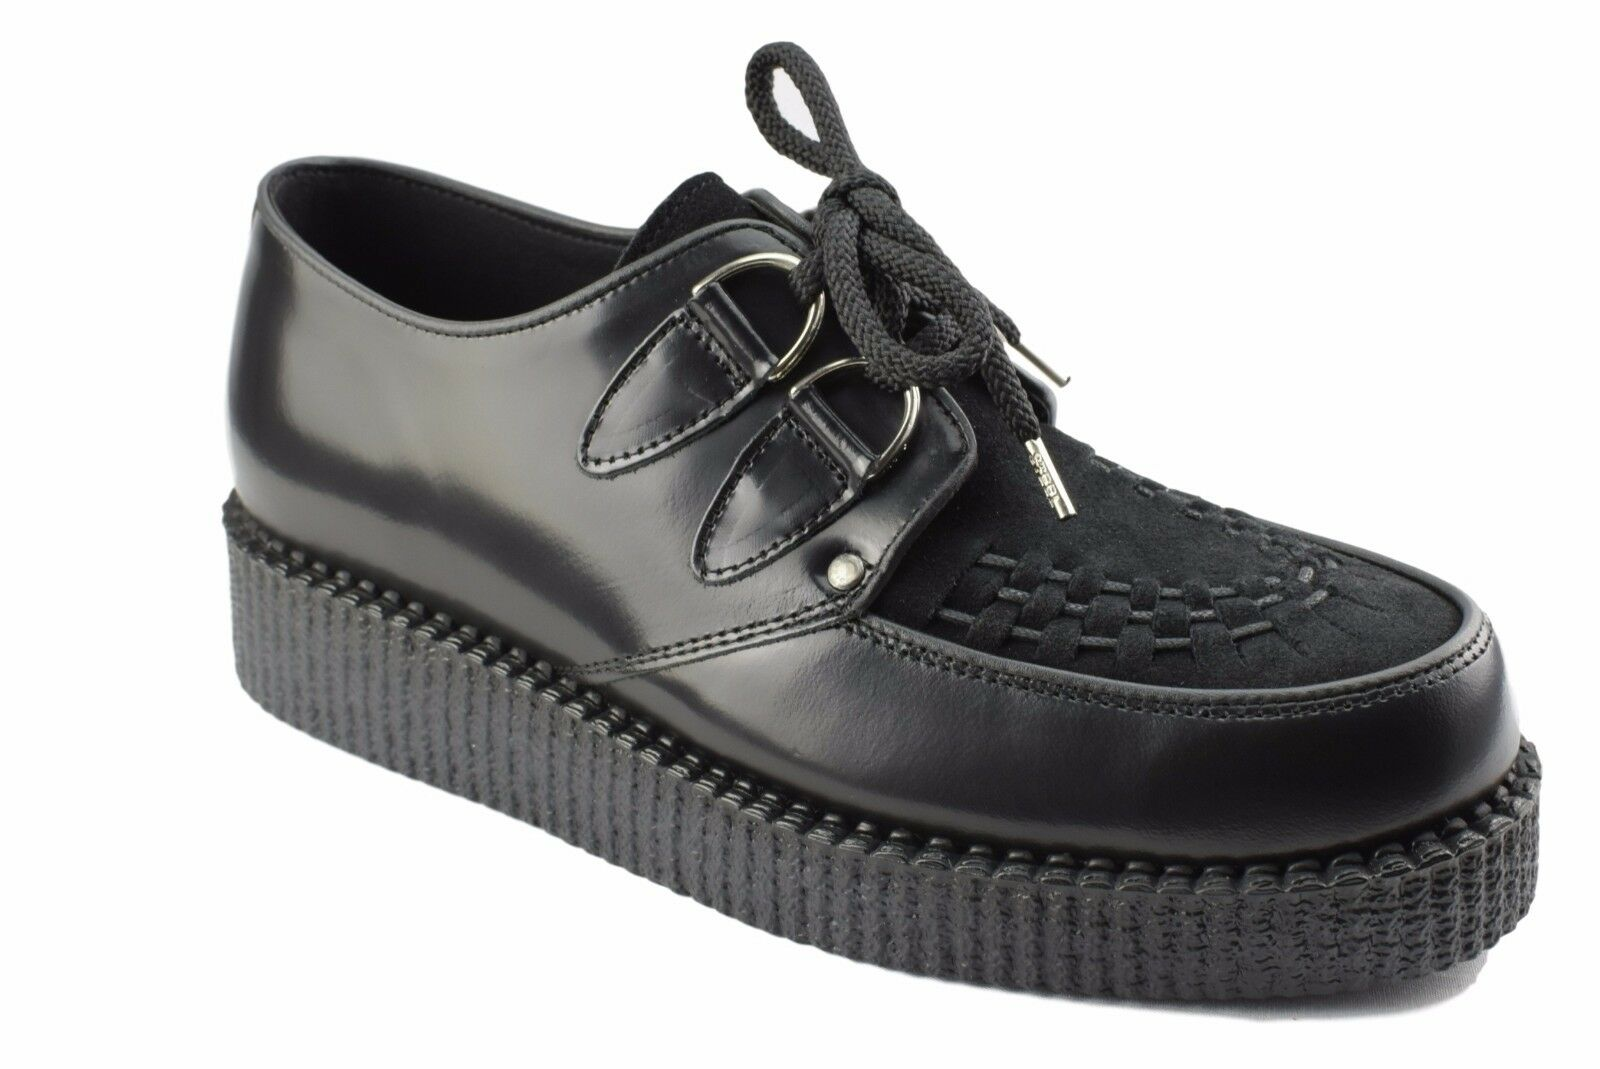 Steel Ground schuhe schwarz Leather schwarz Suede Creepers Low Sole D Ring Casual